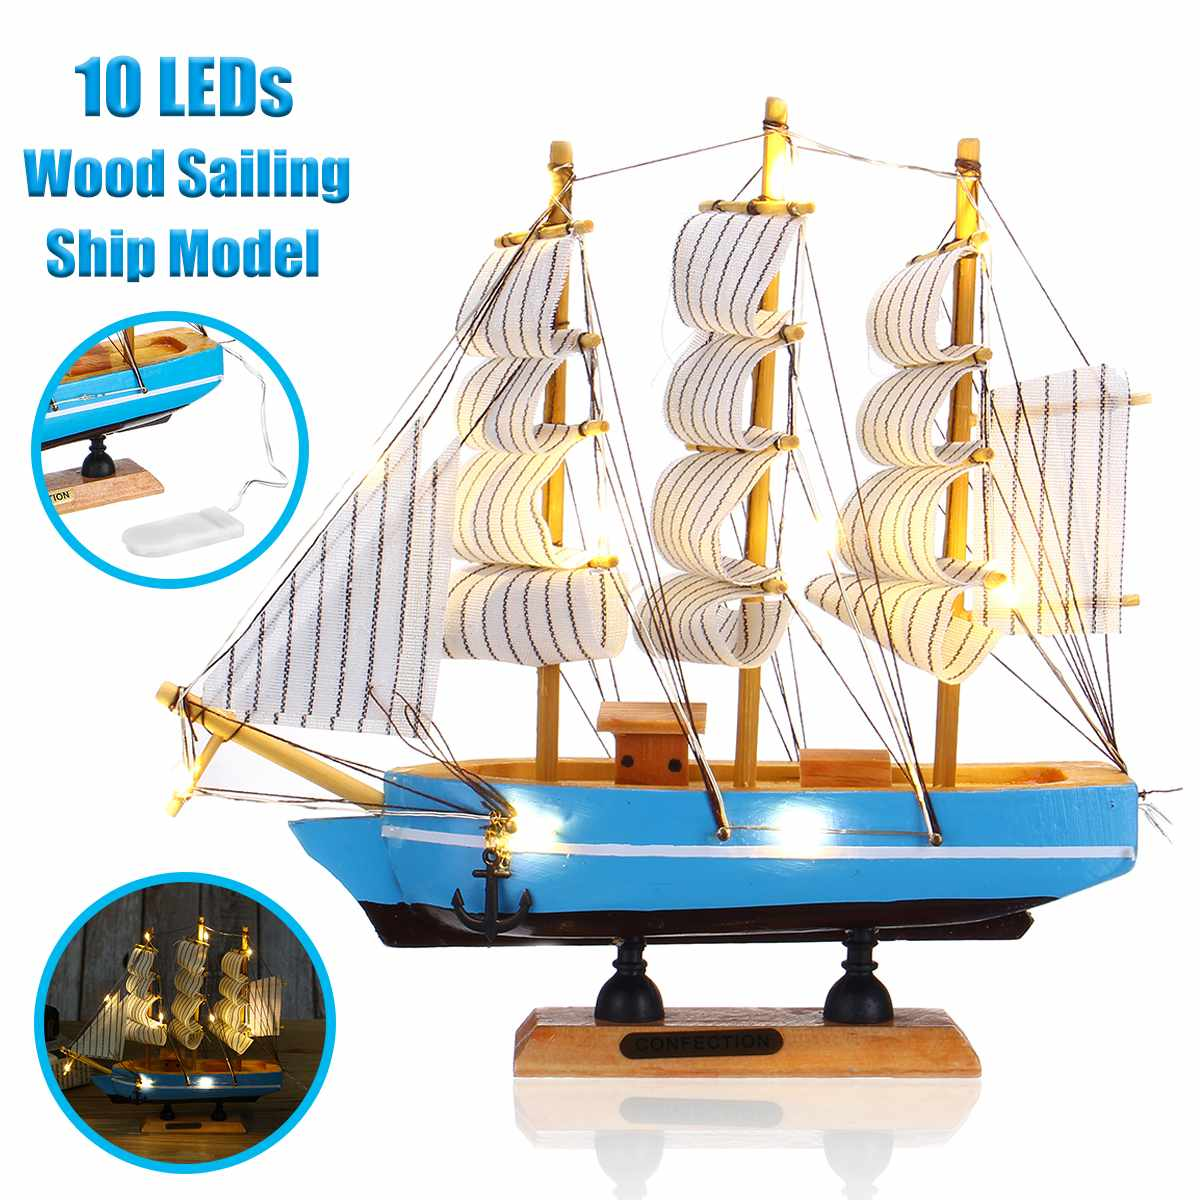 LBLA 10pcs LED Wood Sailing Ship Model Wooden Craft Sailor Handcrafted Boat Home Decoration 21x21cm Beautiful Originality